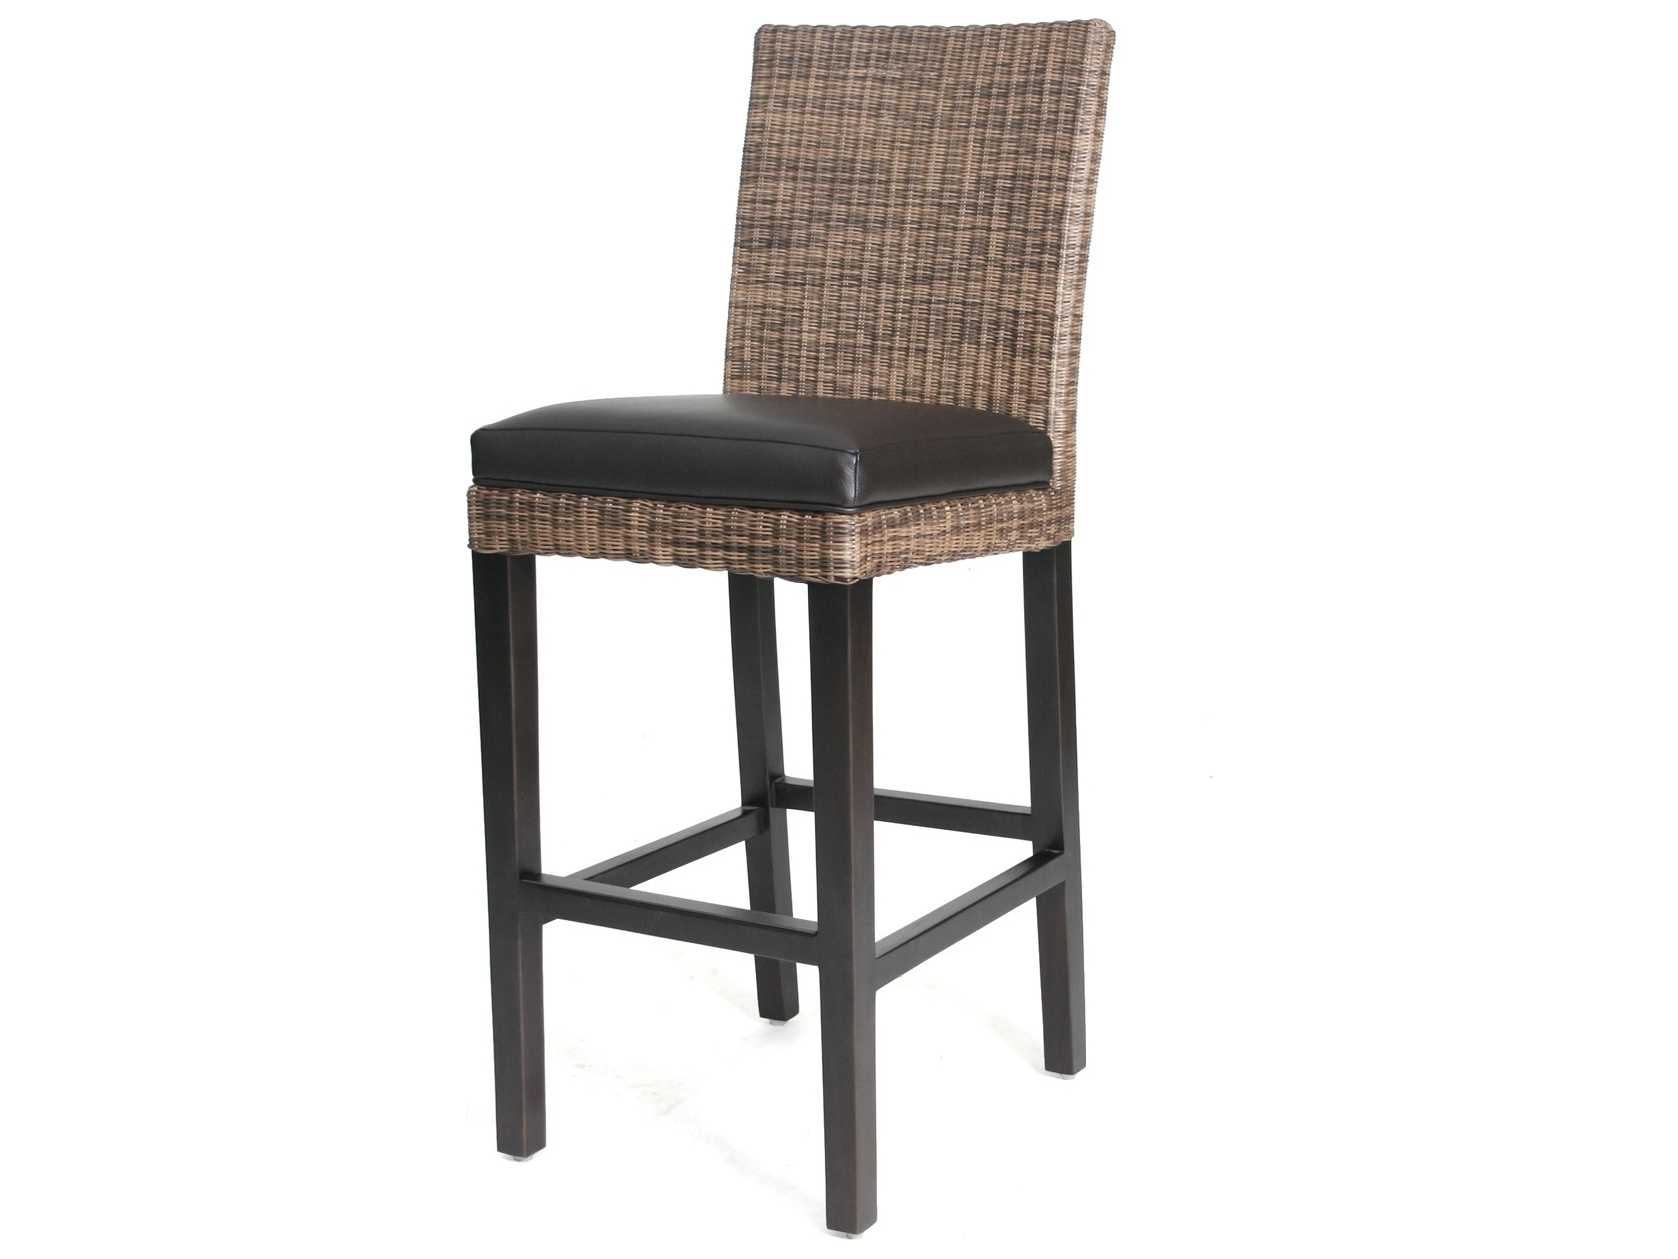 Orient Express Furniture Verona Wicker Counter Stool